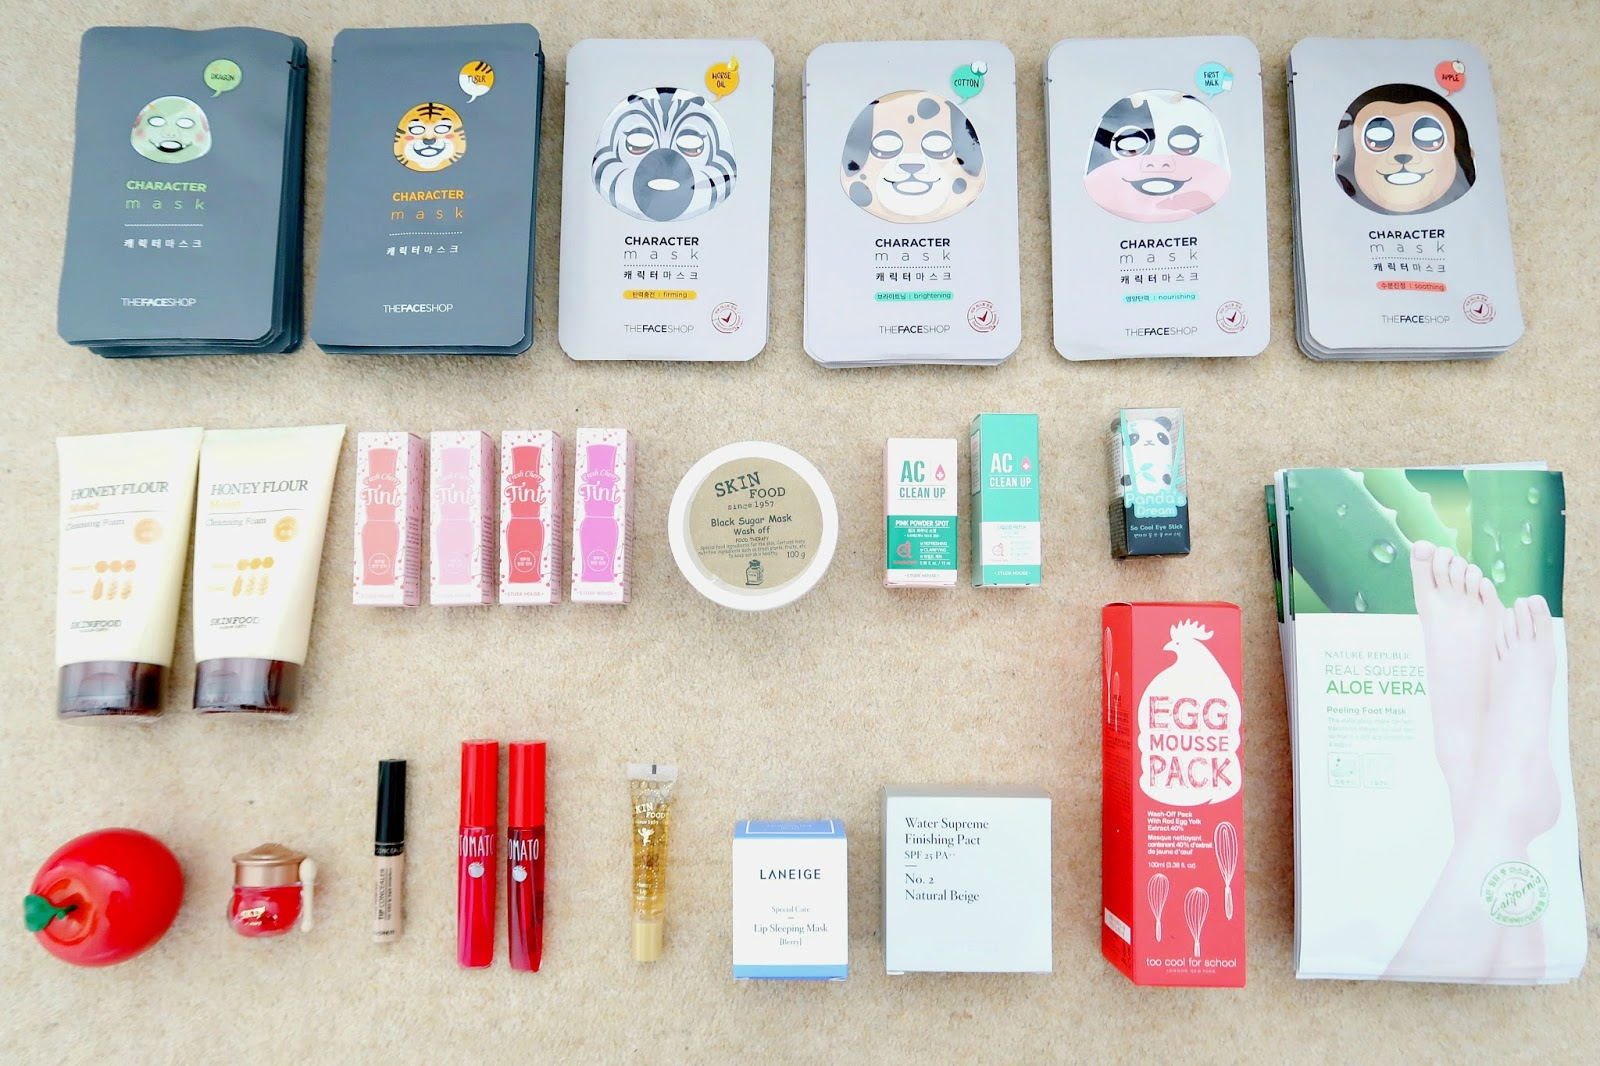 My Korean Beauty Haul 2017 review etude house, too cool for school, the face shop, nature republic, skinfood, laneige, tonymoly, thesaem